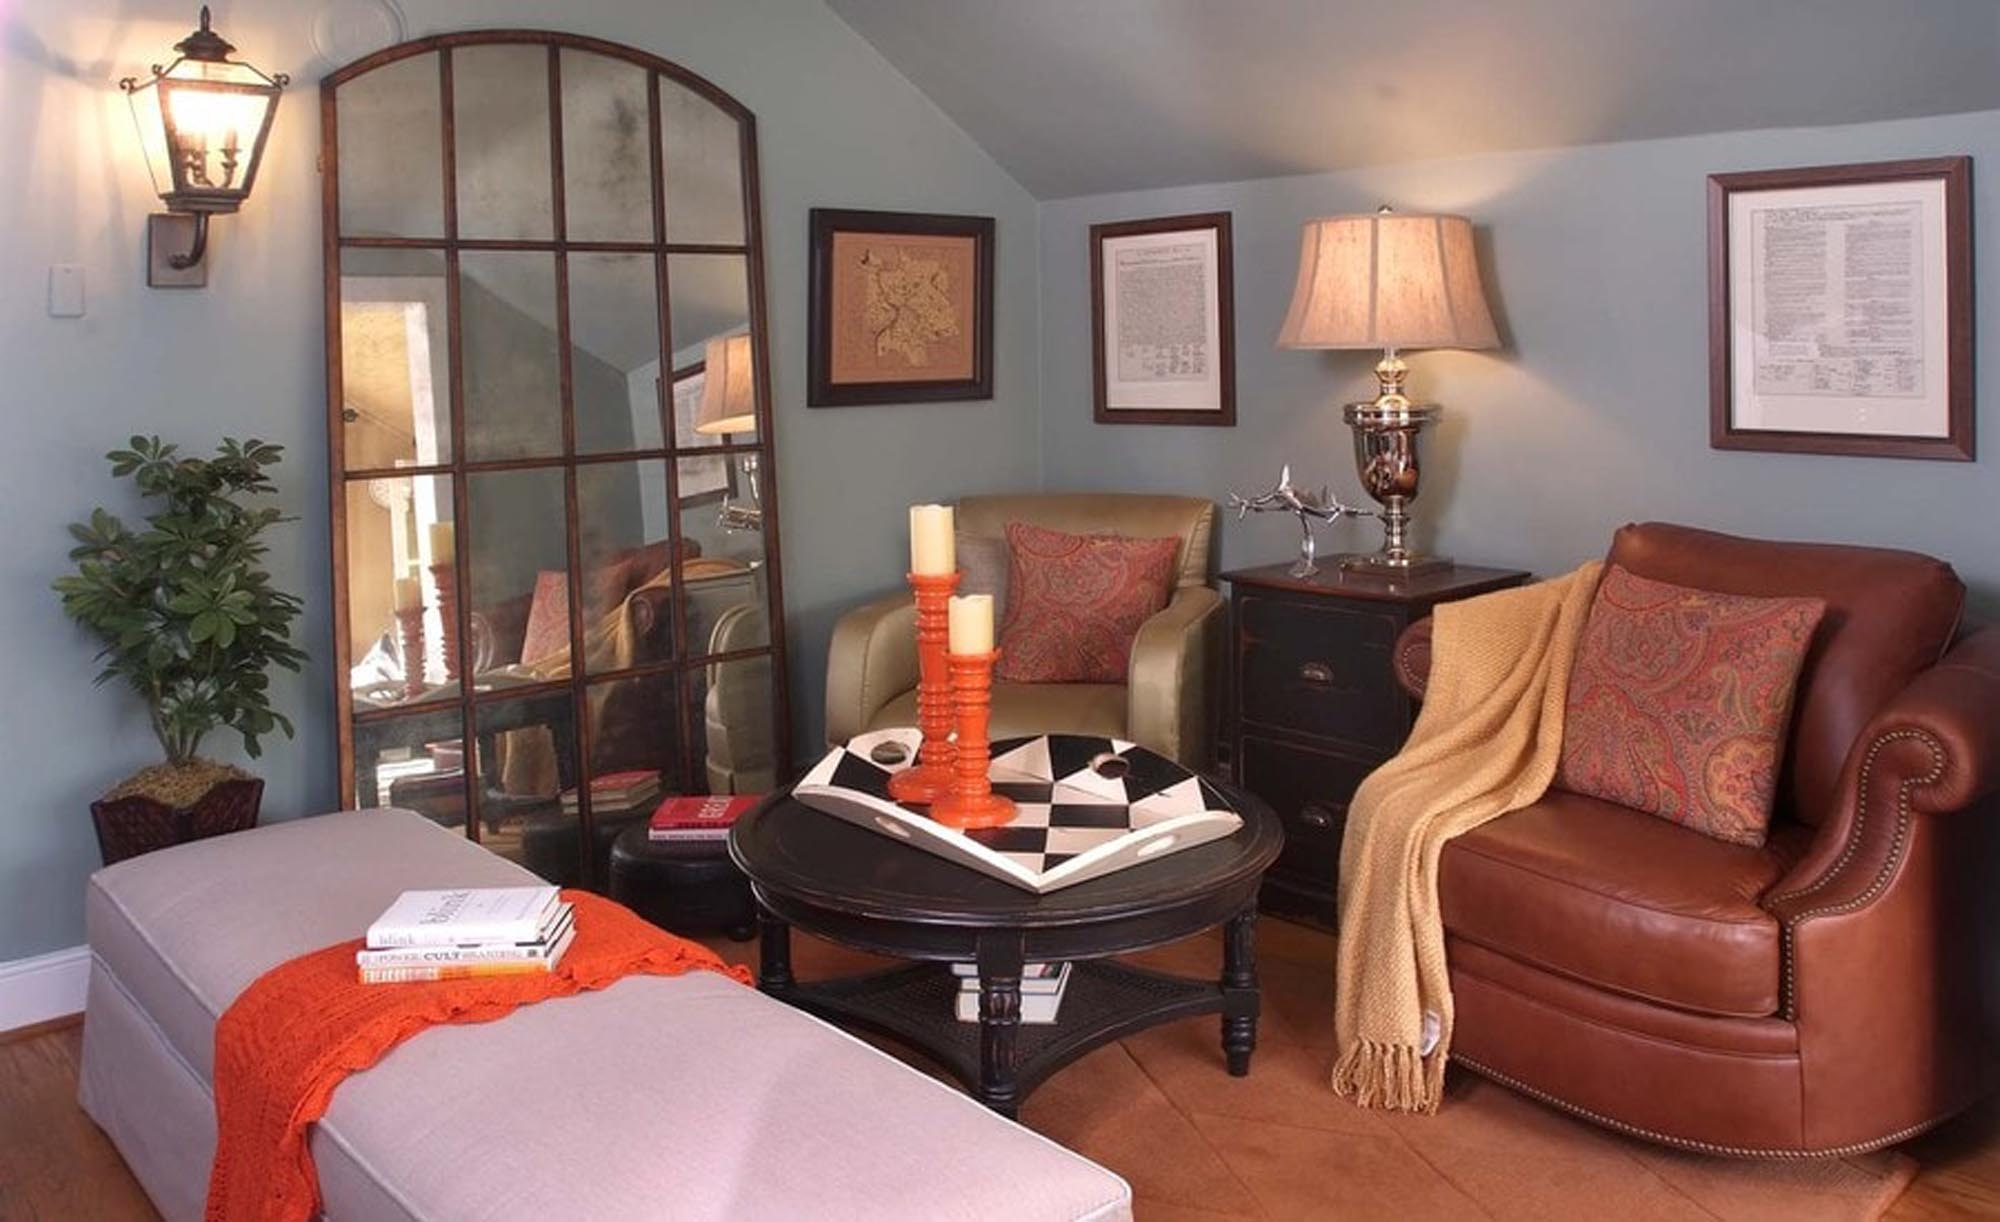 Long violet colored ottoman with antique mirror leaning against wall